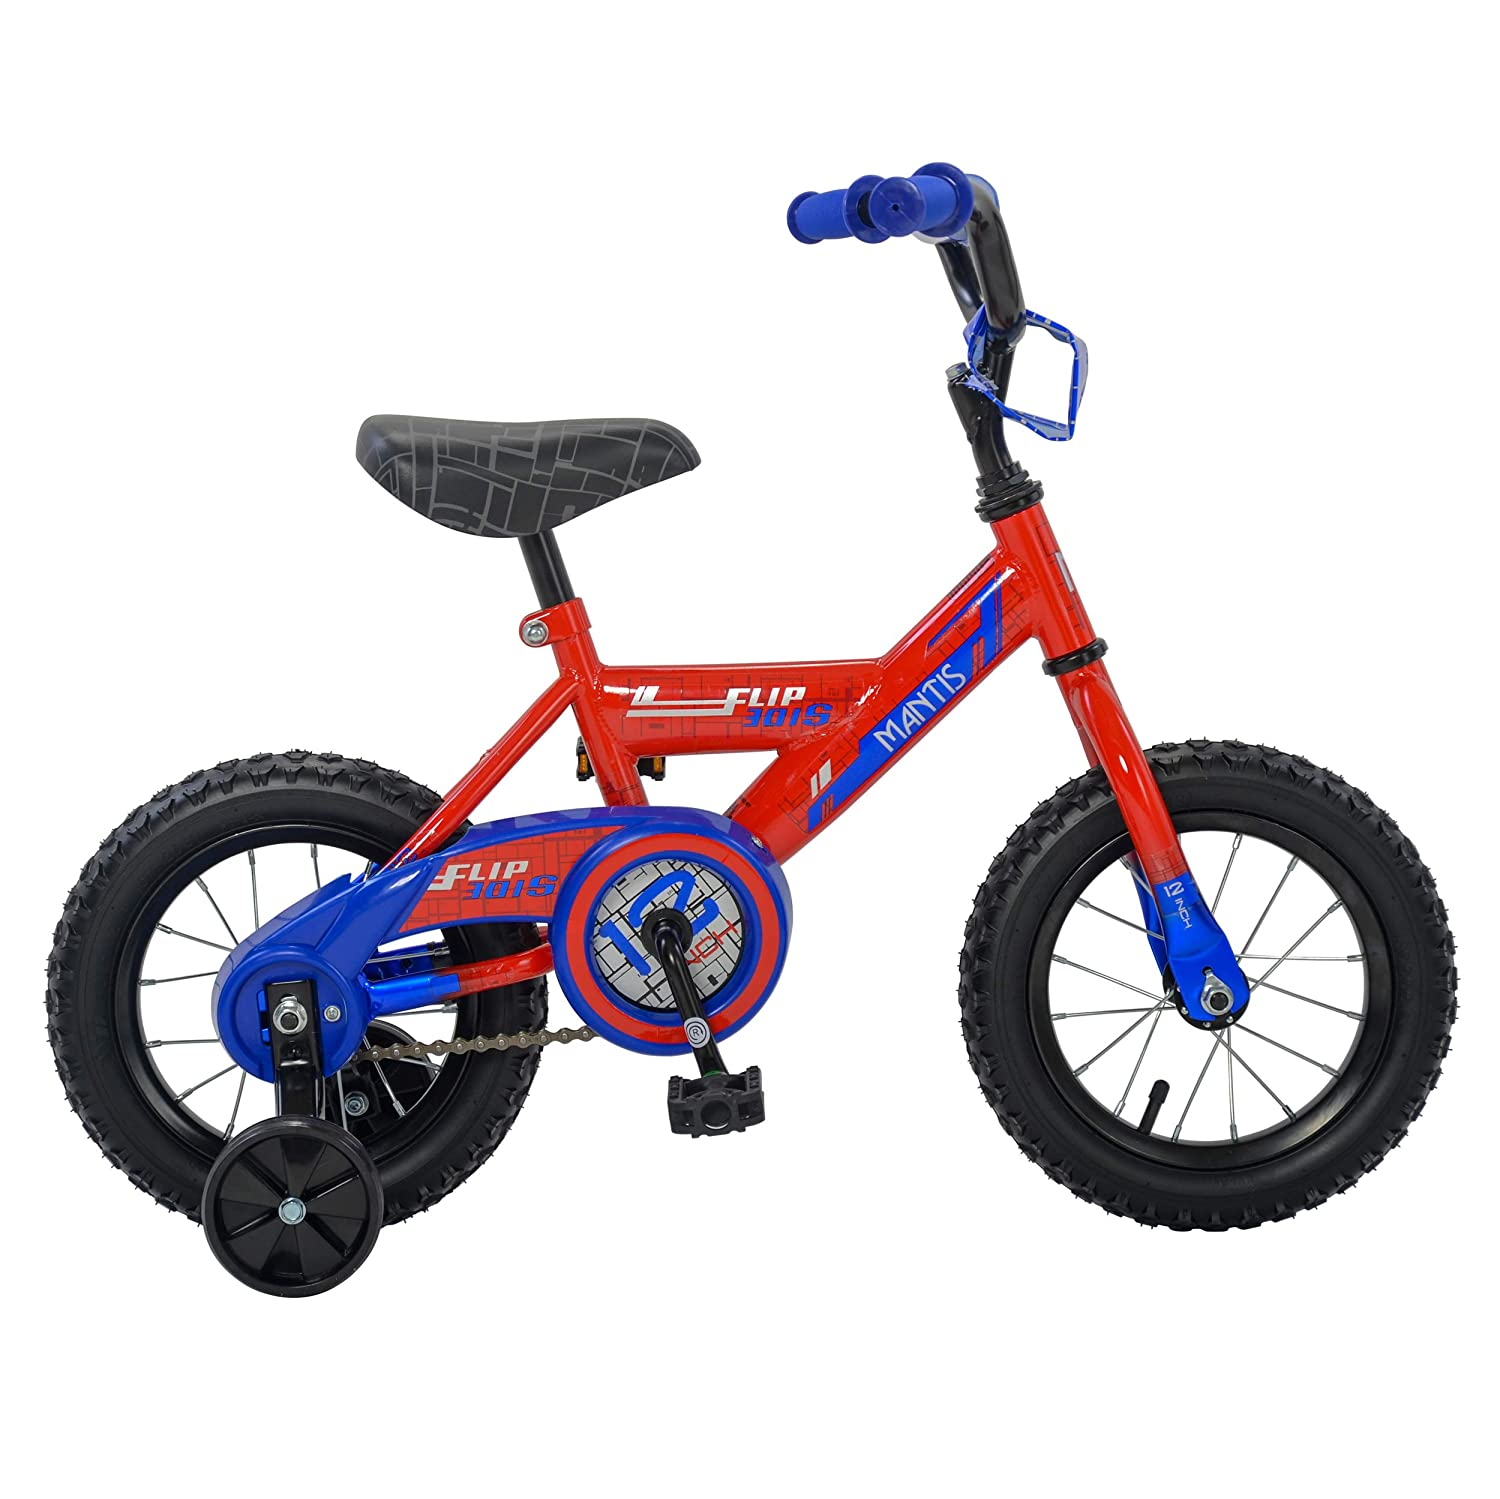 Red bluee 12 Inch Mantis Flipside Kid's Bicycle